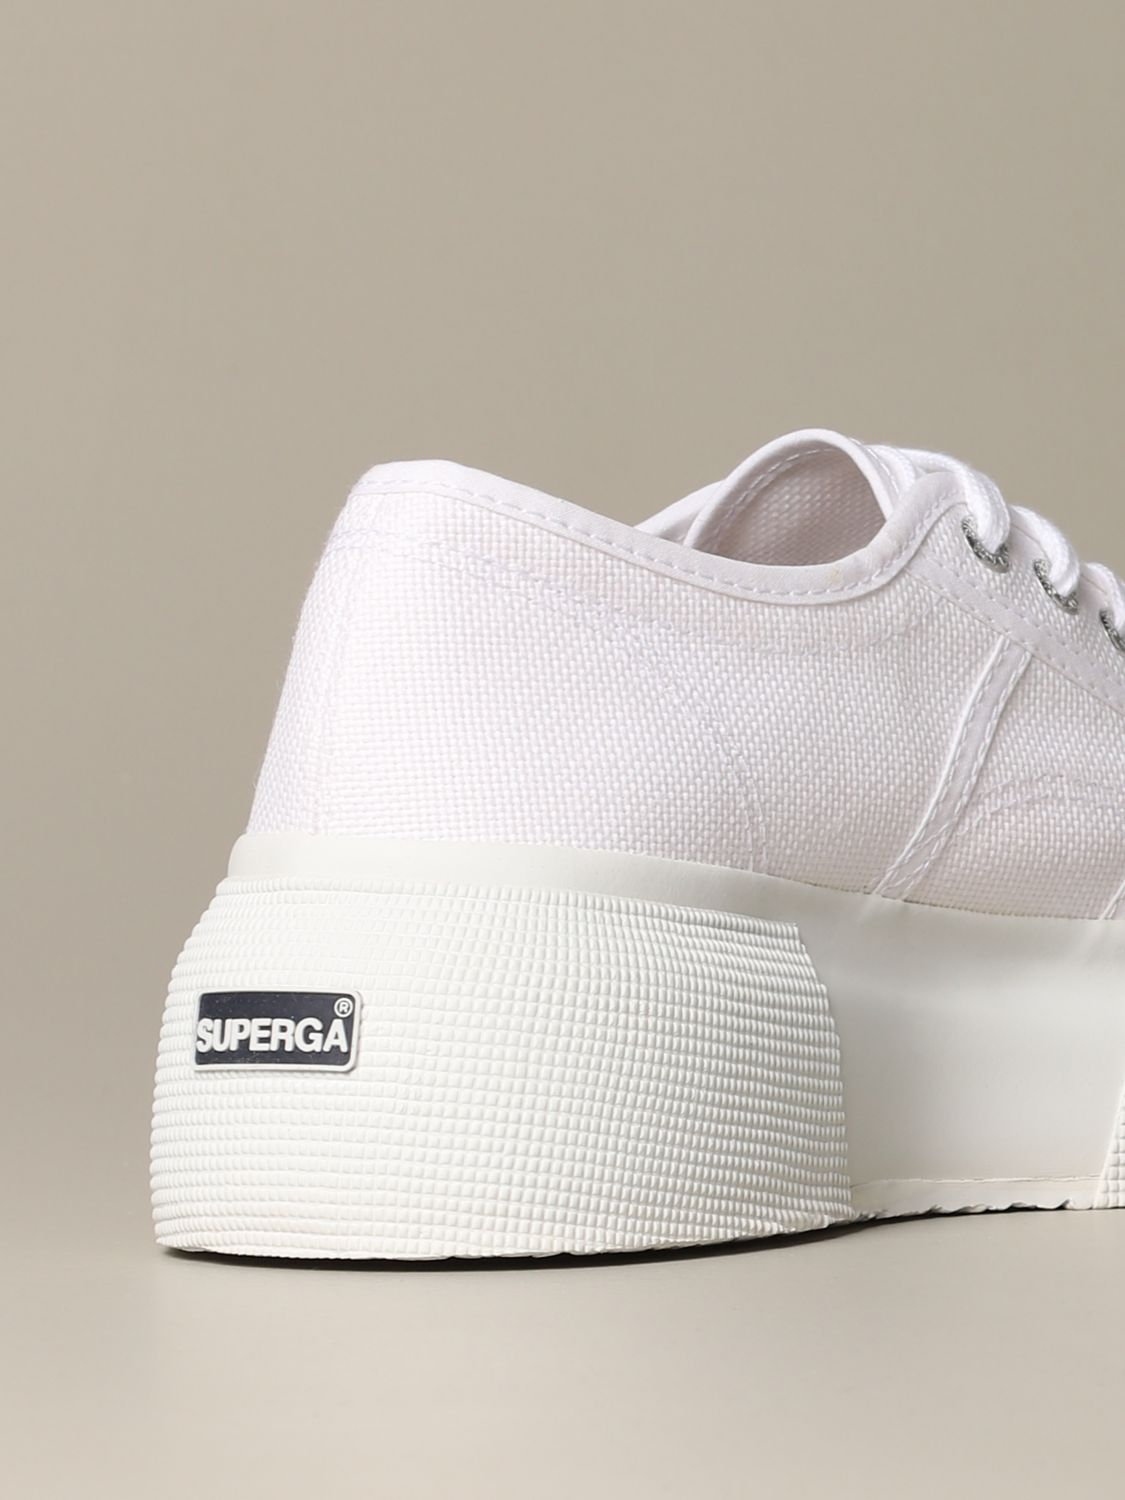 Sneakers Superga: Shoes women Superga white 3